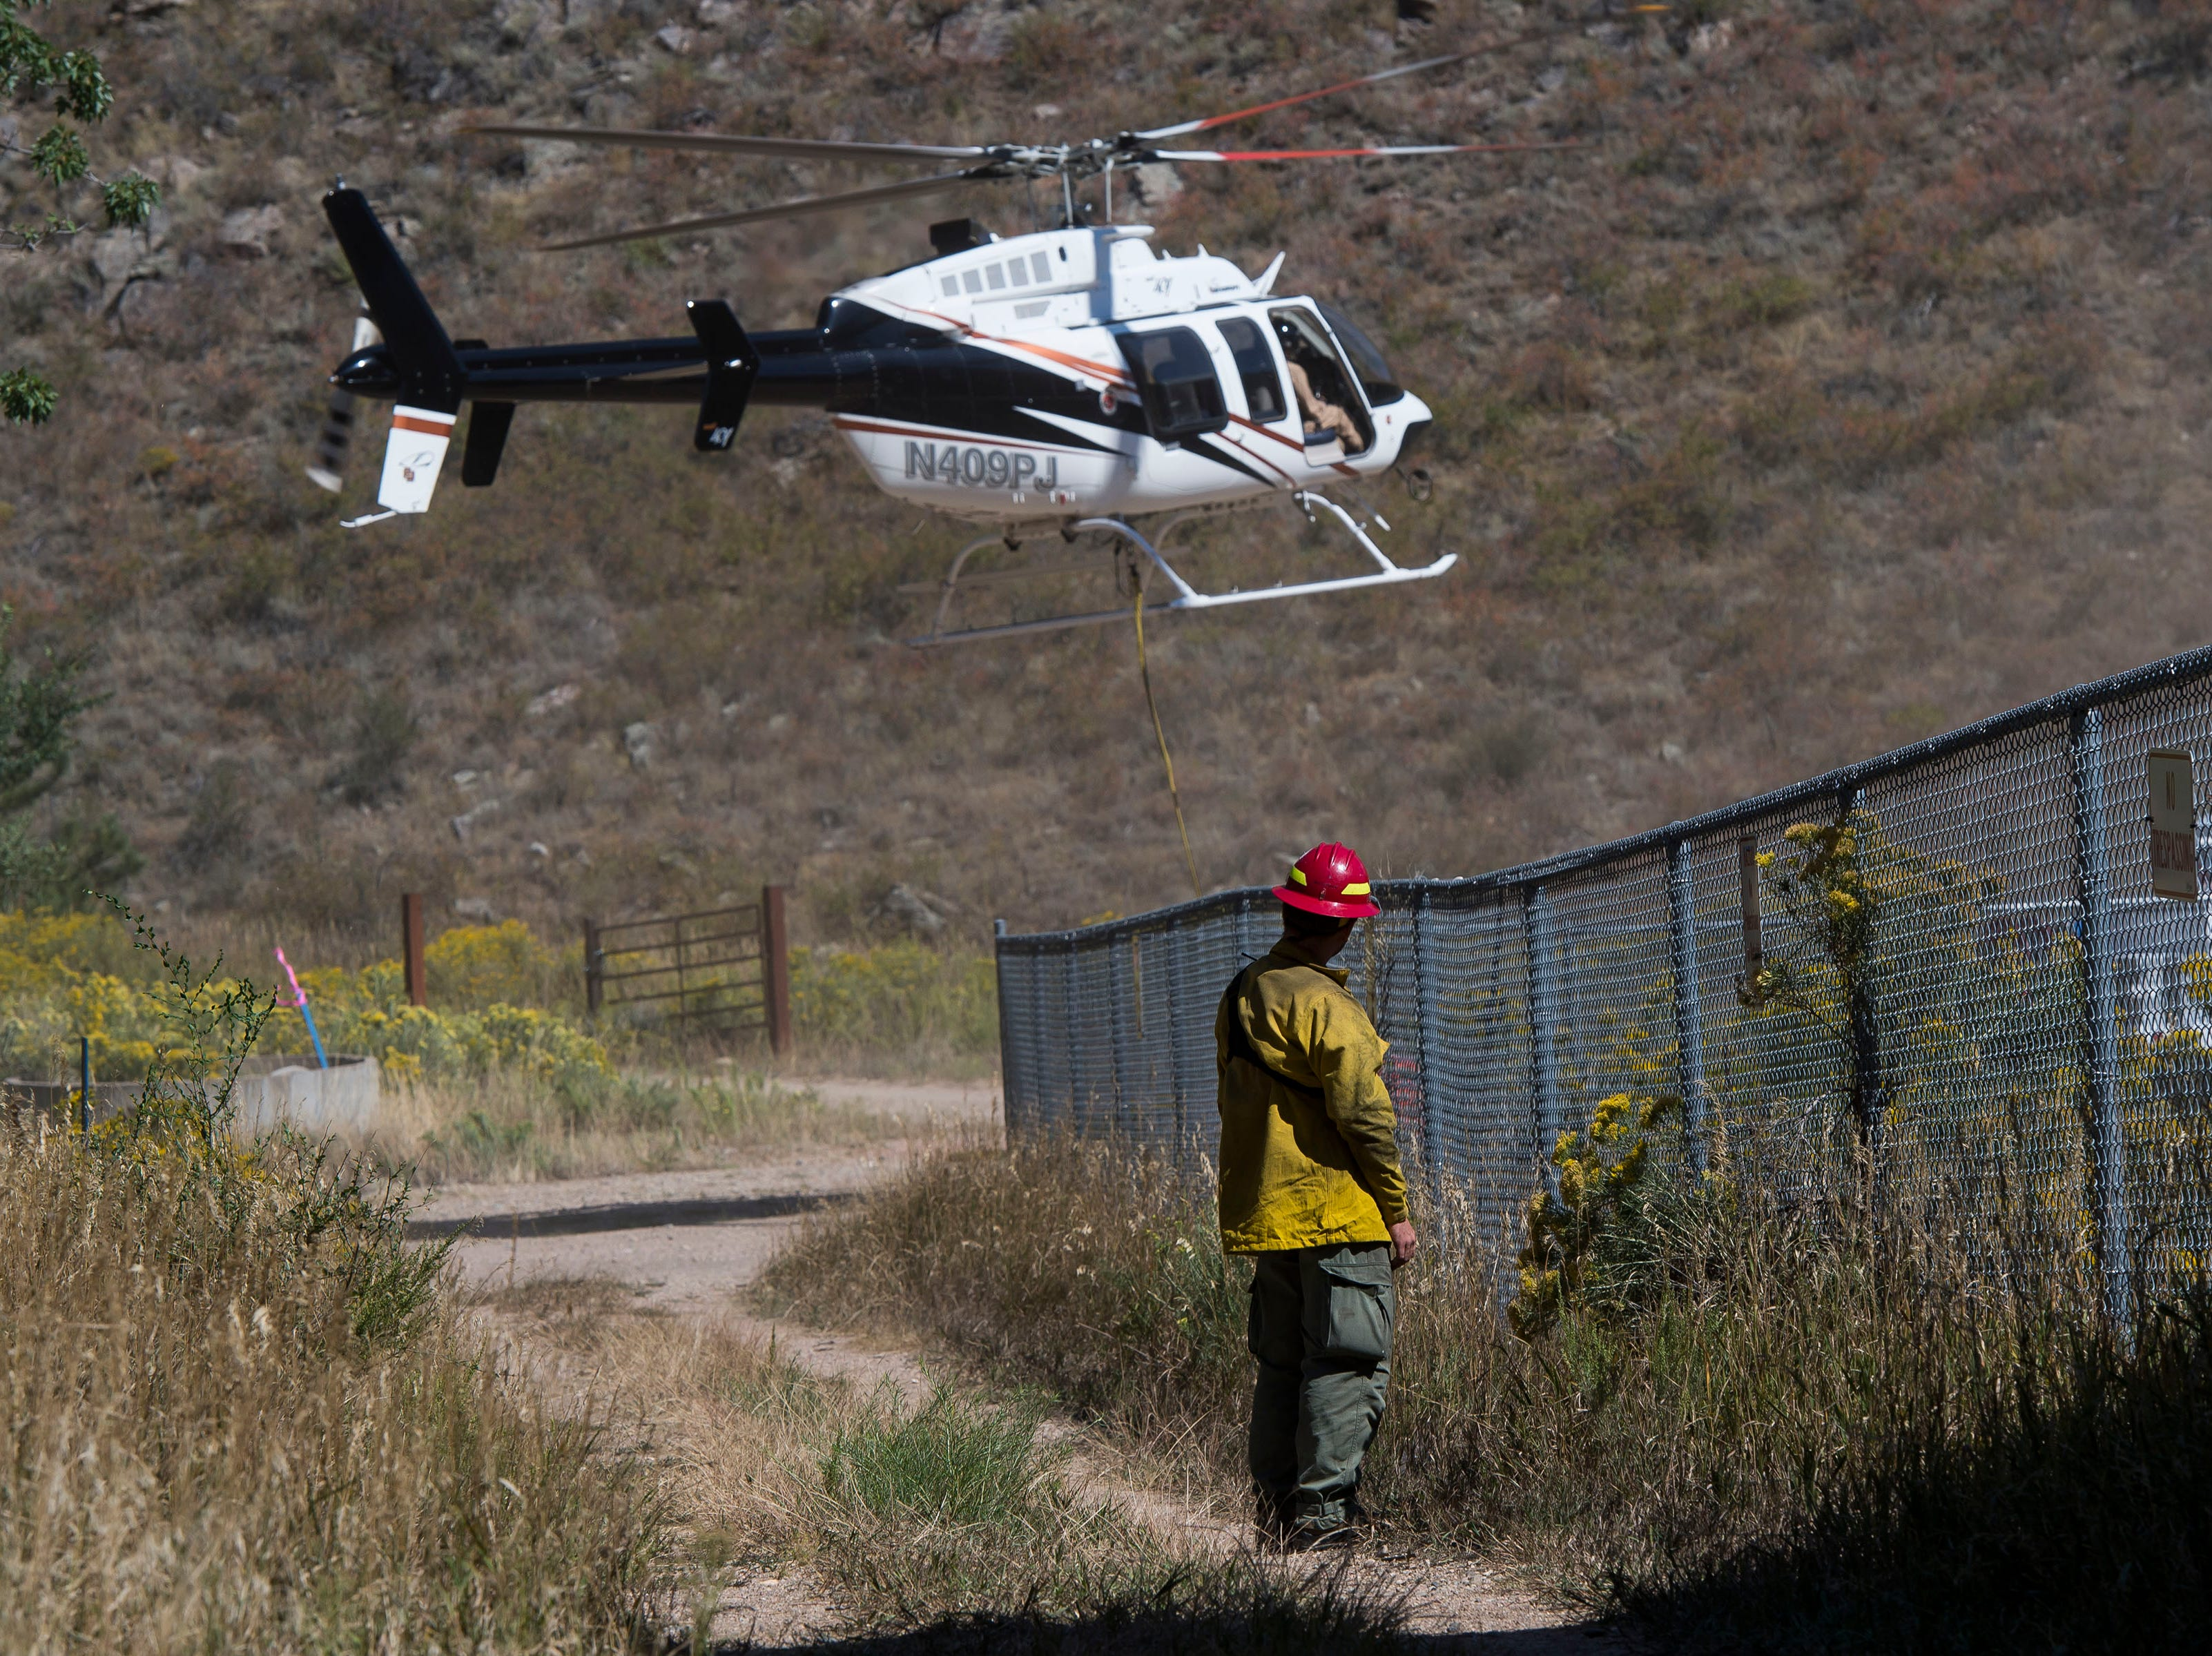 A firefighter looks on as a helicopter takes off from the staging area in Gateway Park on Wednesday, Sept. 12, 2018, in the Poudre Canyon, near Seaman Reservoir in Larimer County, Colo.